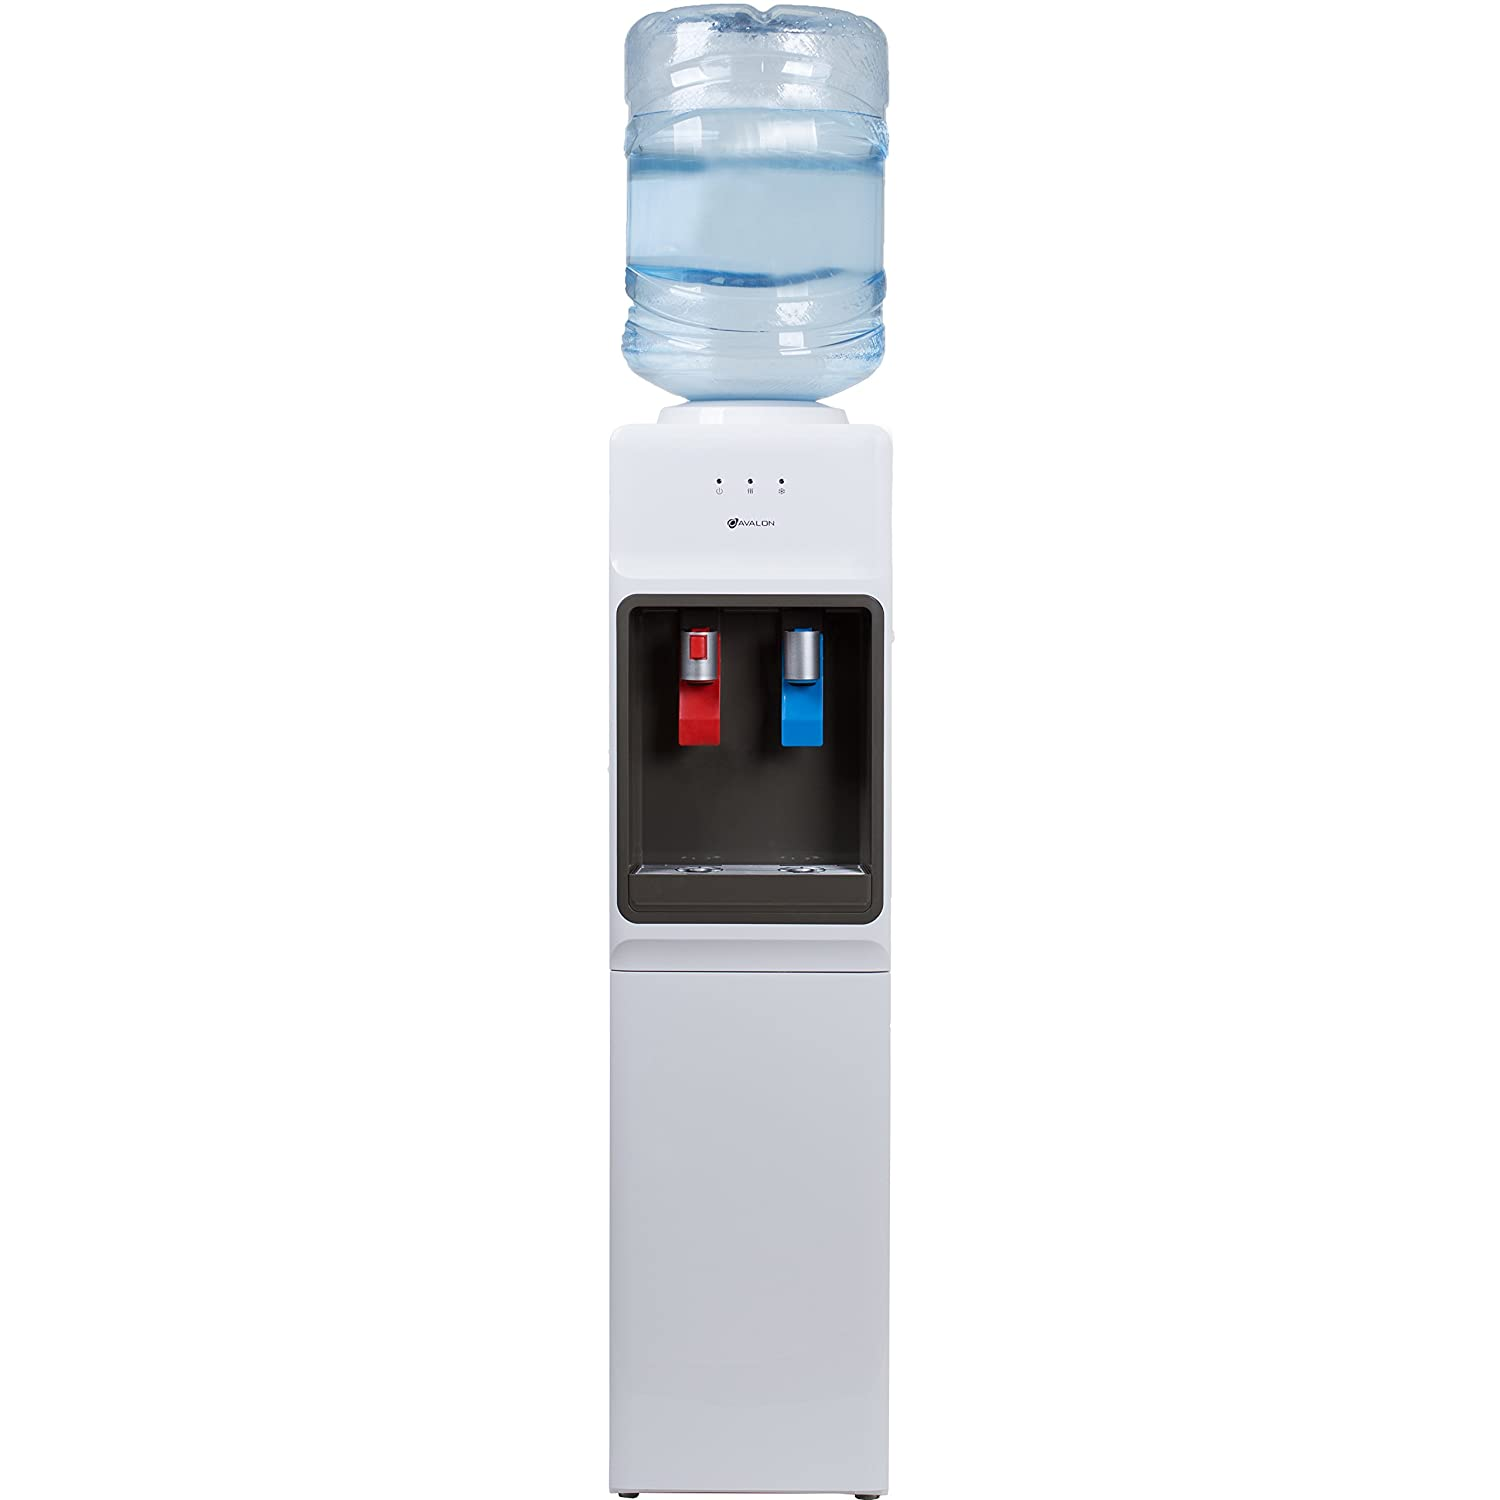 Refrigerated Water Dispenser Amazoncom Avalon Top Loading Water Cooler Dispenser Hot Cold